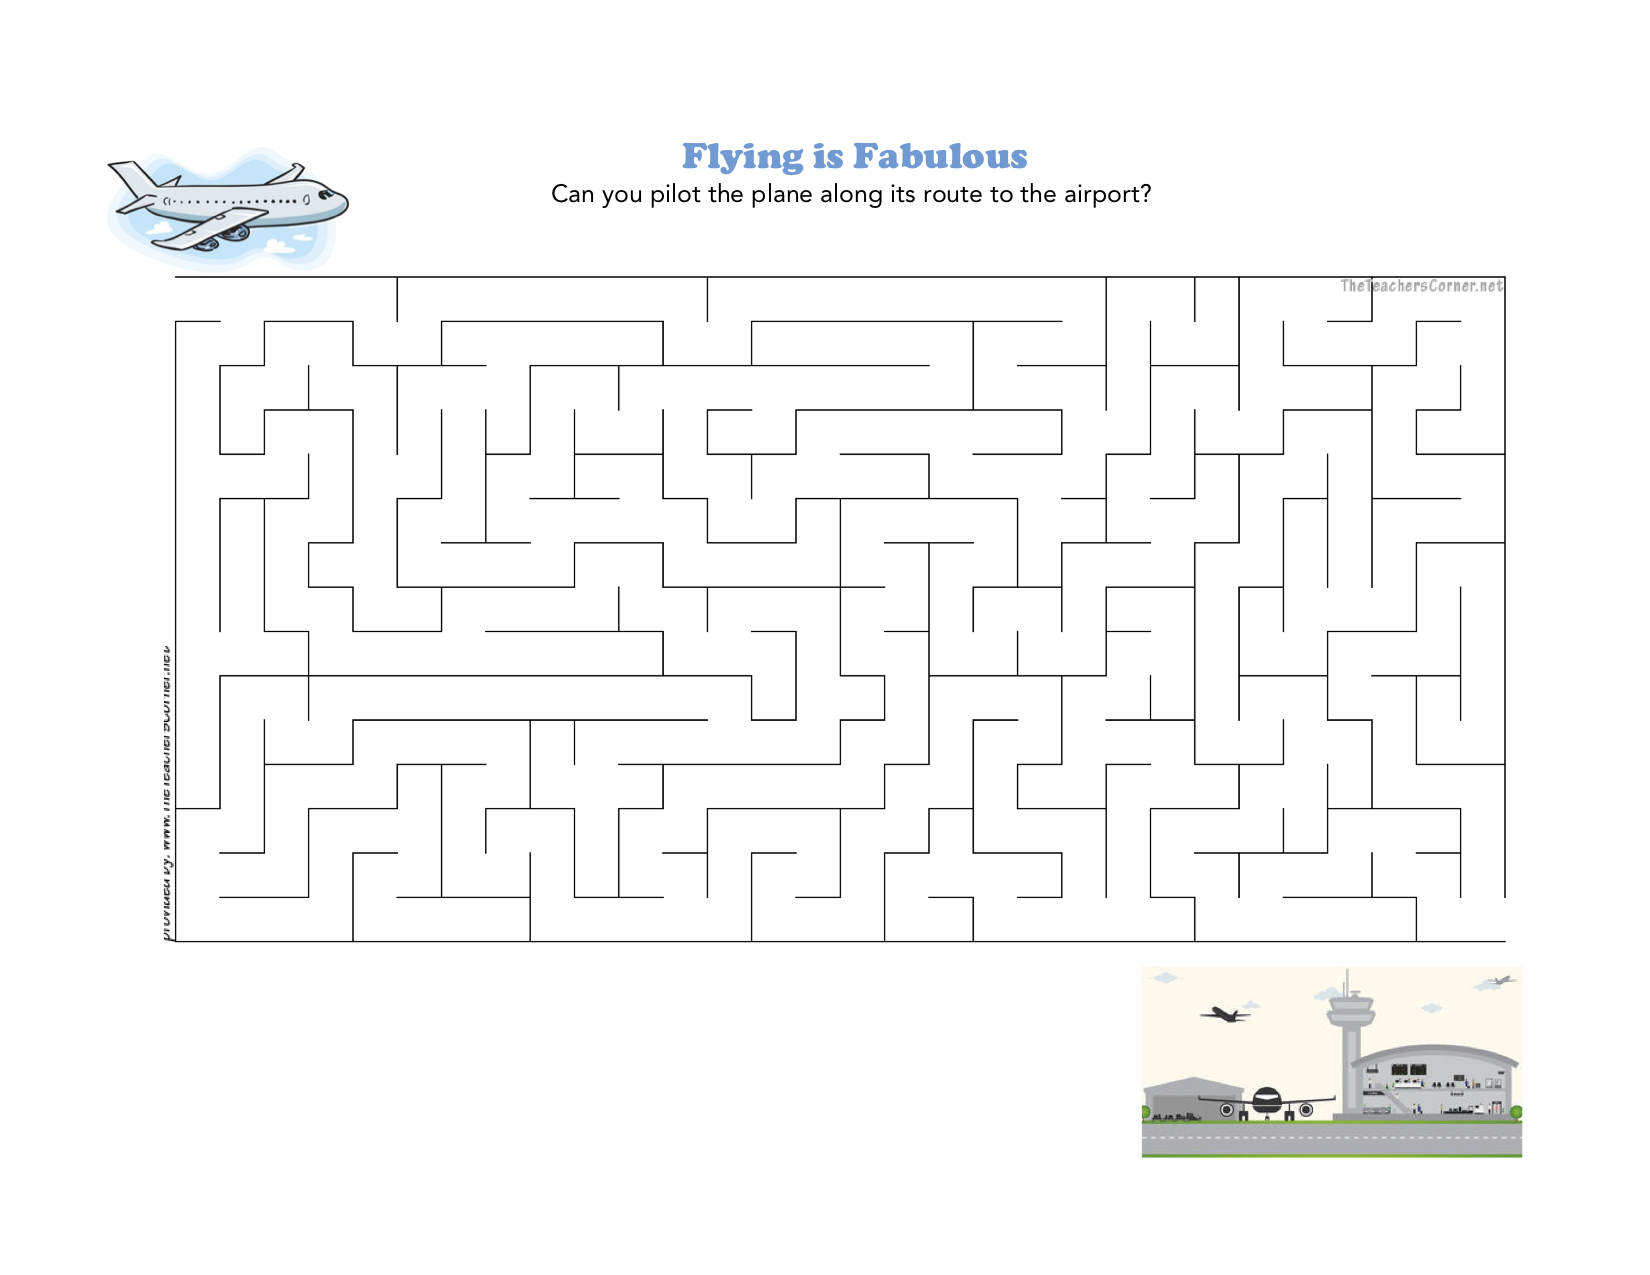 celebrate-picture-books-picture-book-review-Flying-is-Fabulous-Maze